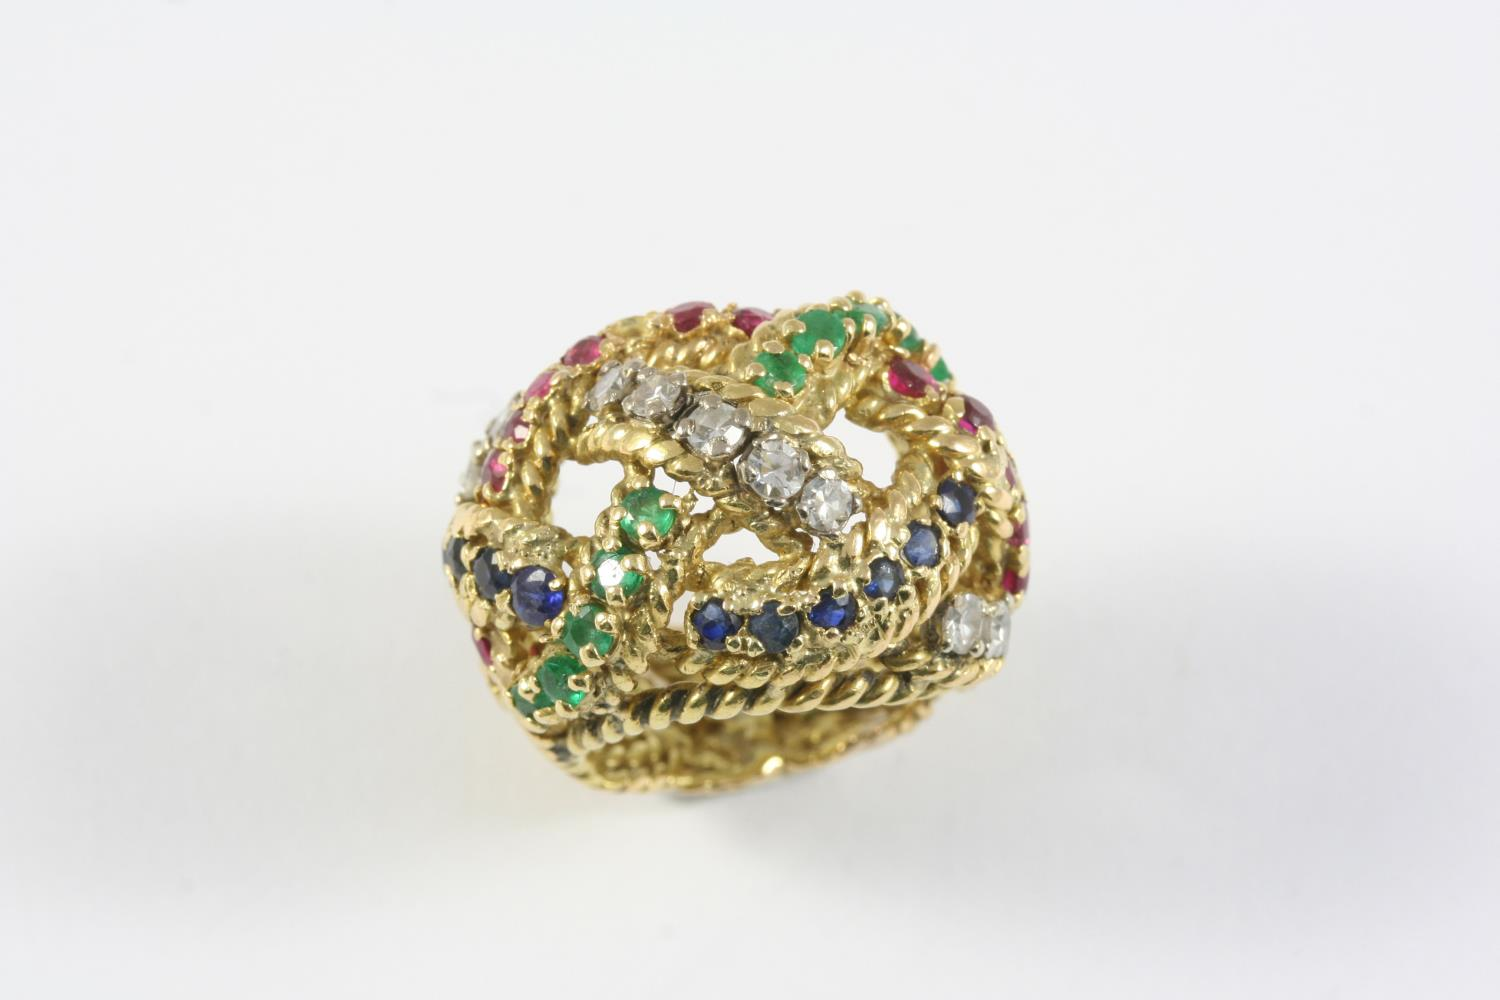 A GOLD AND GEM SET RING the woven openwork design is mounted with circular-cut diamonds, emeralds,